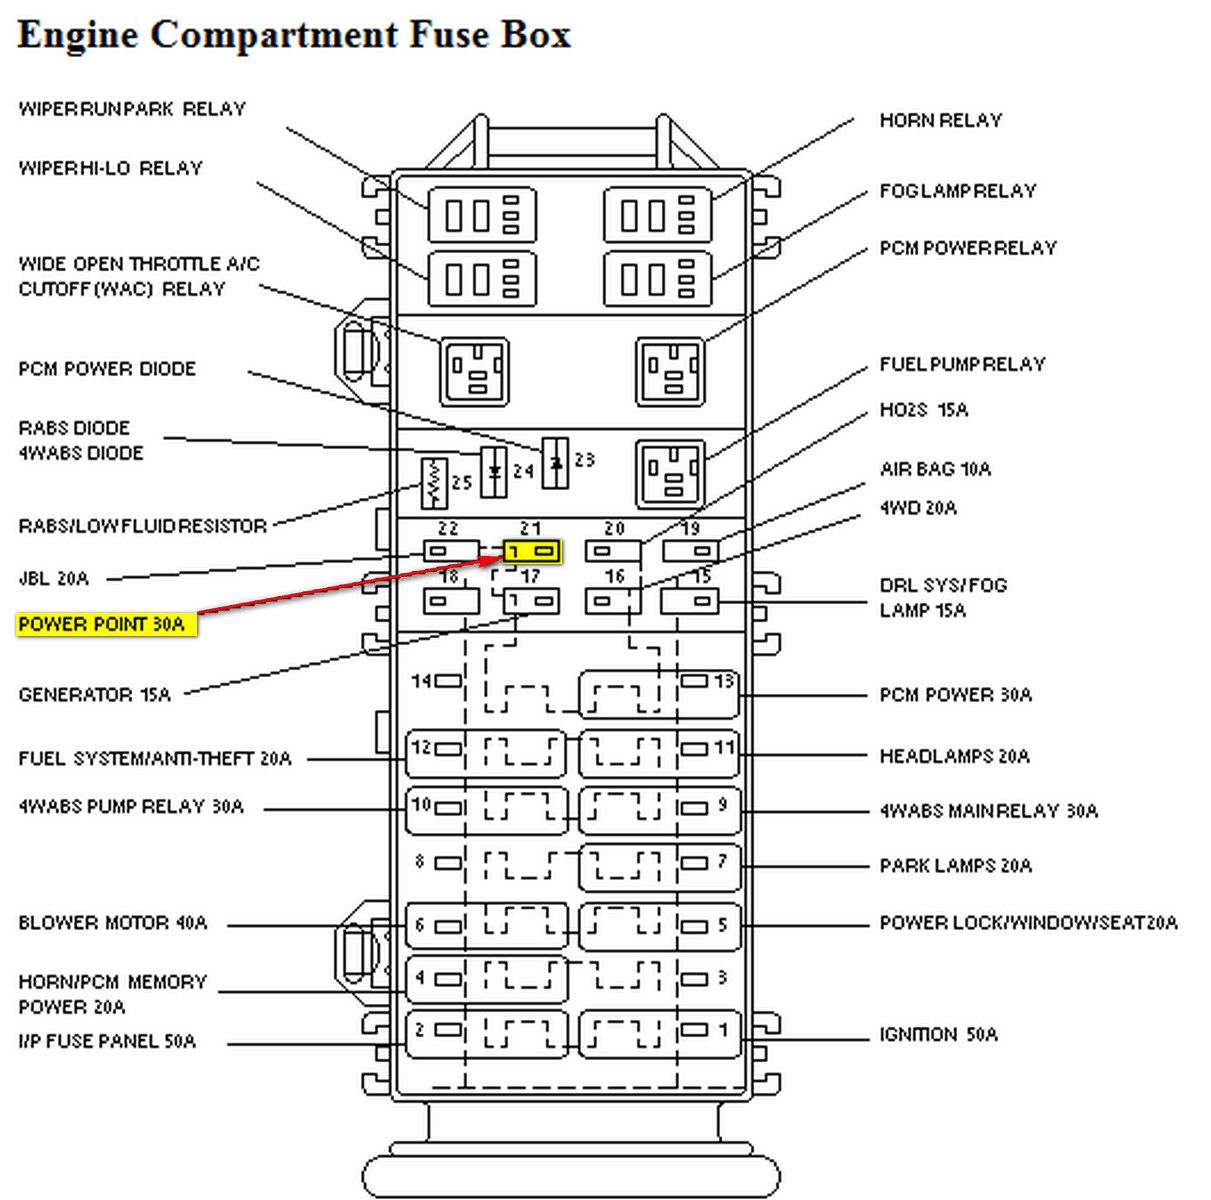 8a55967da7ae1bd251b795845886bd24 2016 ford explorer fuse guide wiring diagram simonand 2012 ford fusion fuse box diagram at bayanpartner.co